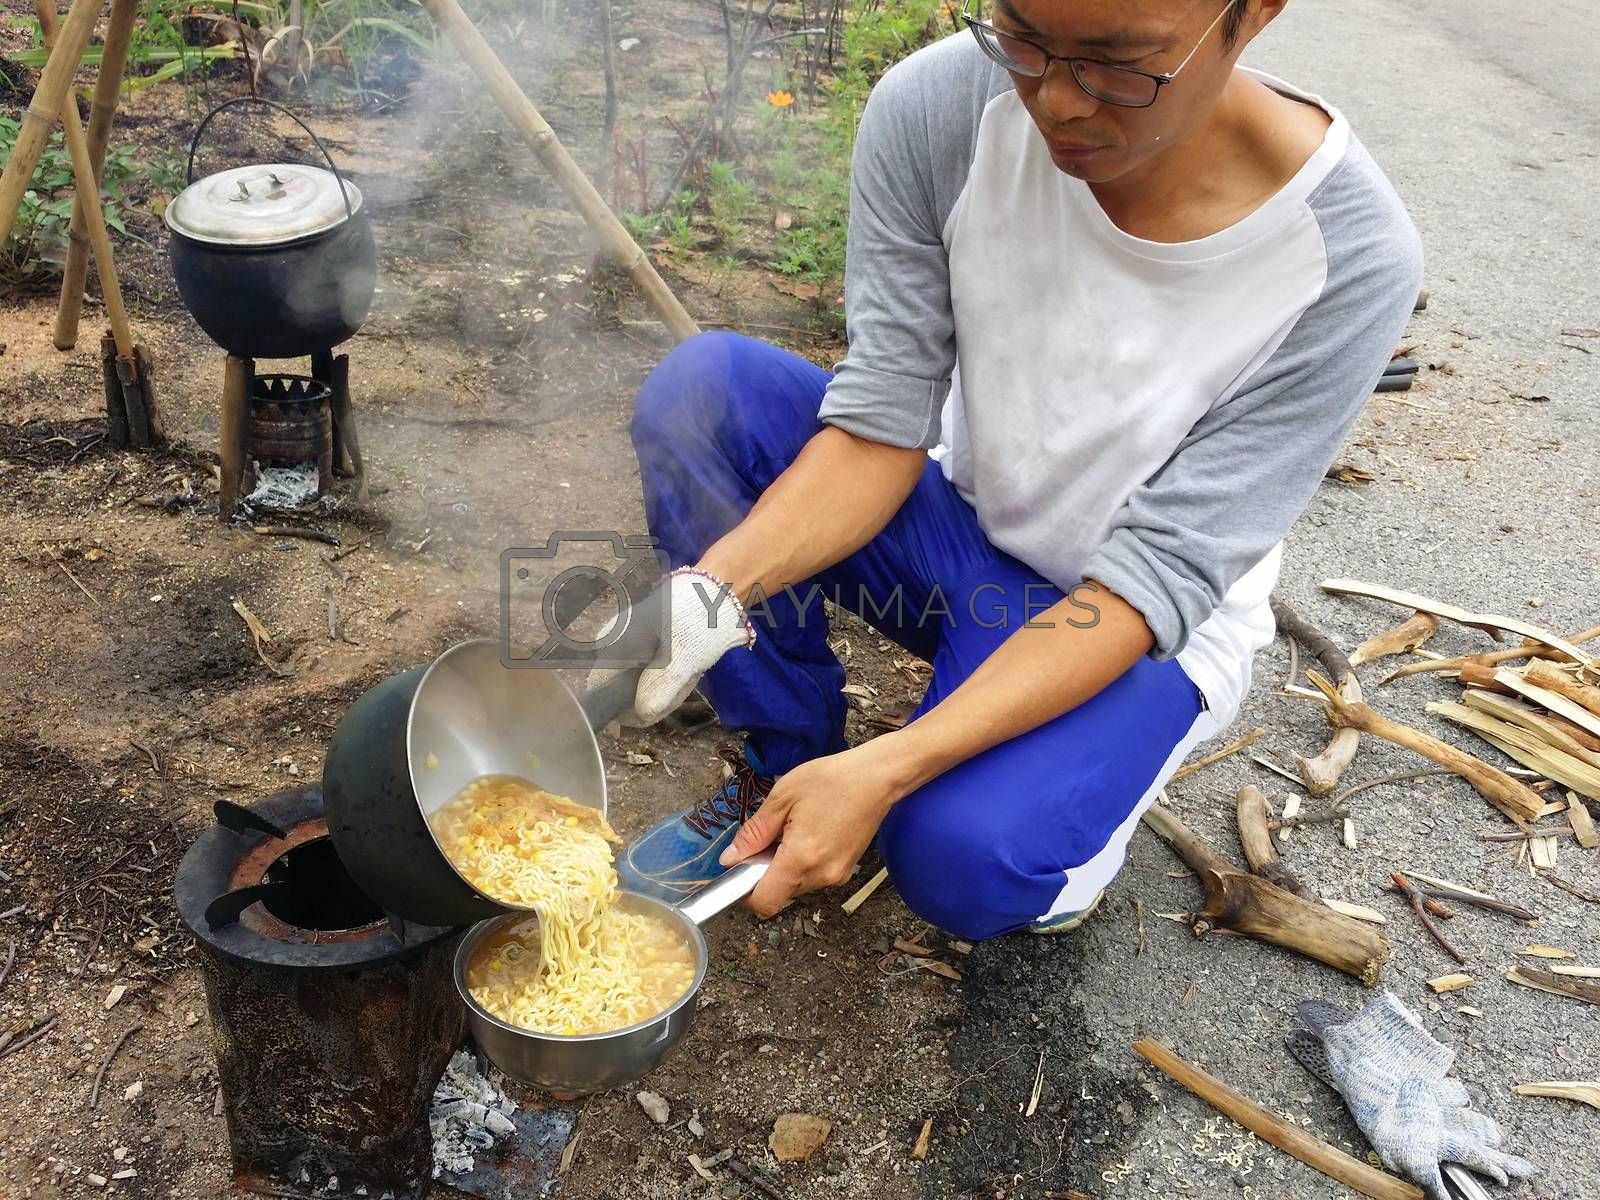 Cooking nodles at outdoors in black pot at picnic on fire